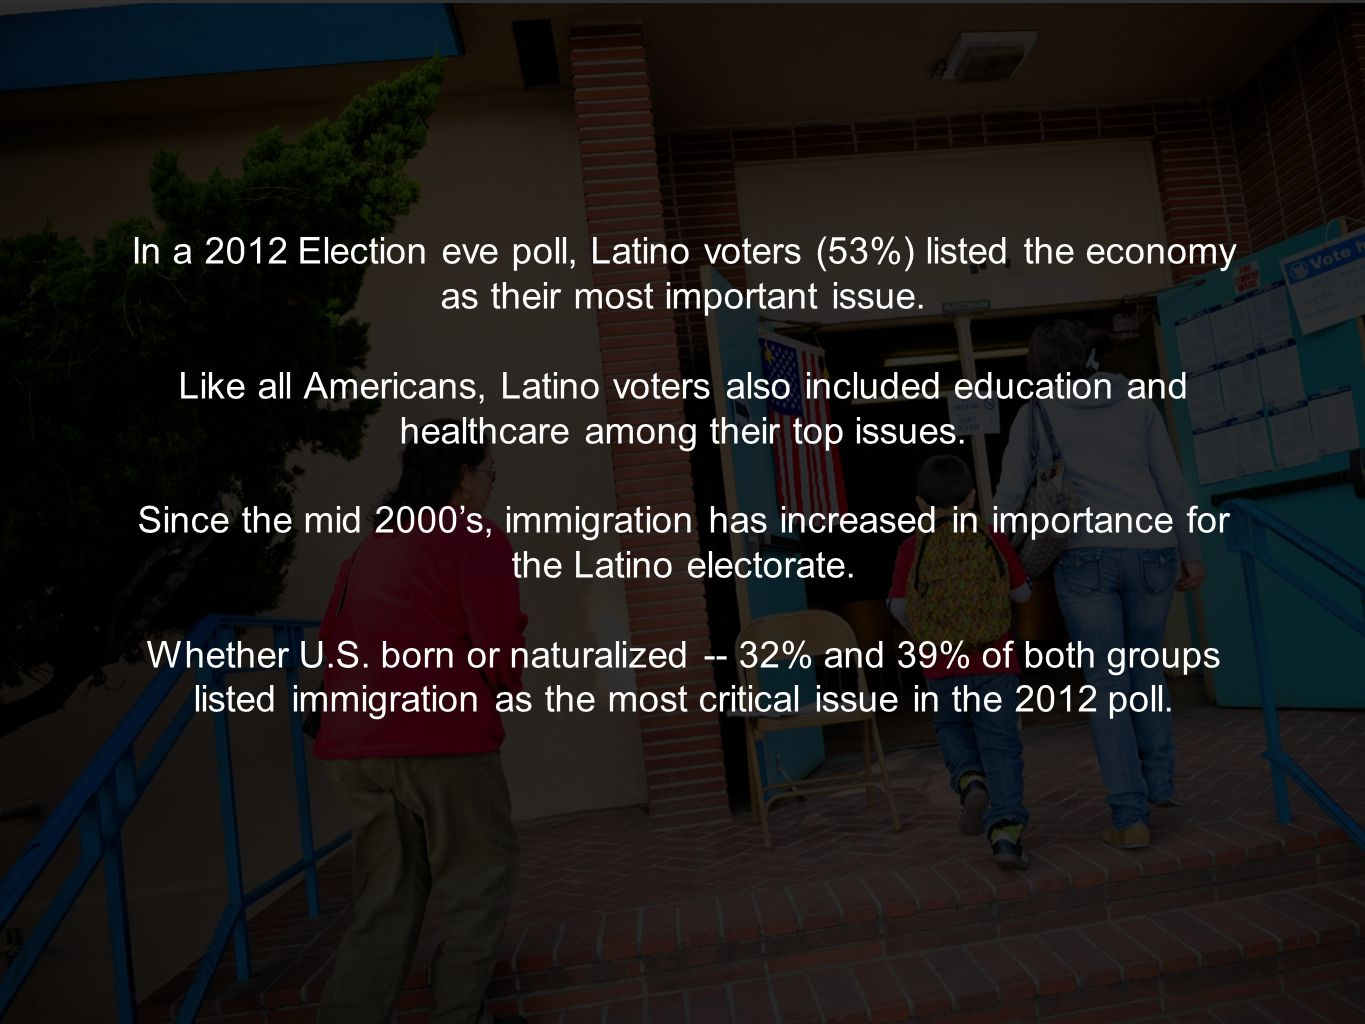 In a 2012 Election eve poll, Latino voters (53%) listed the economy as their most important issue. Like all Americans, Latino voters also included edu